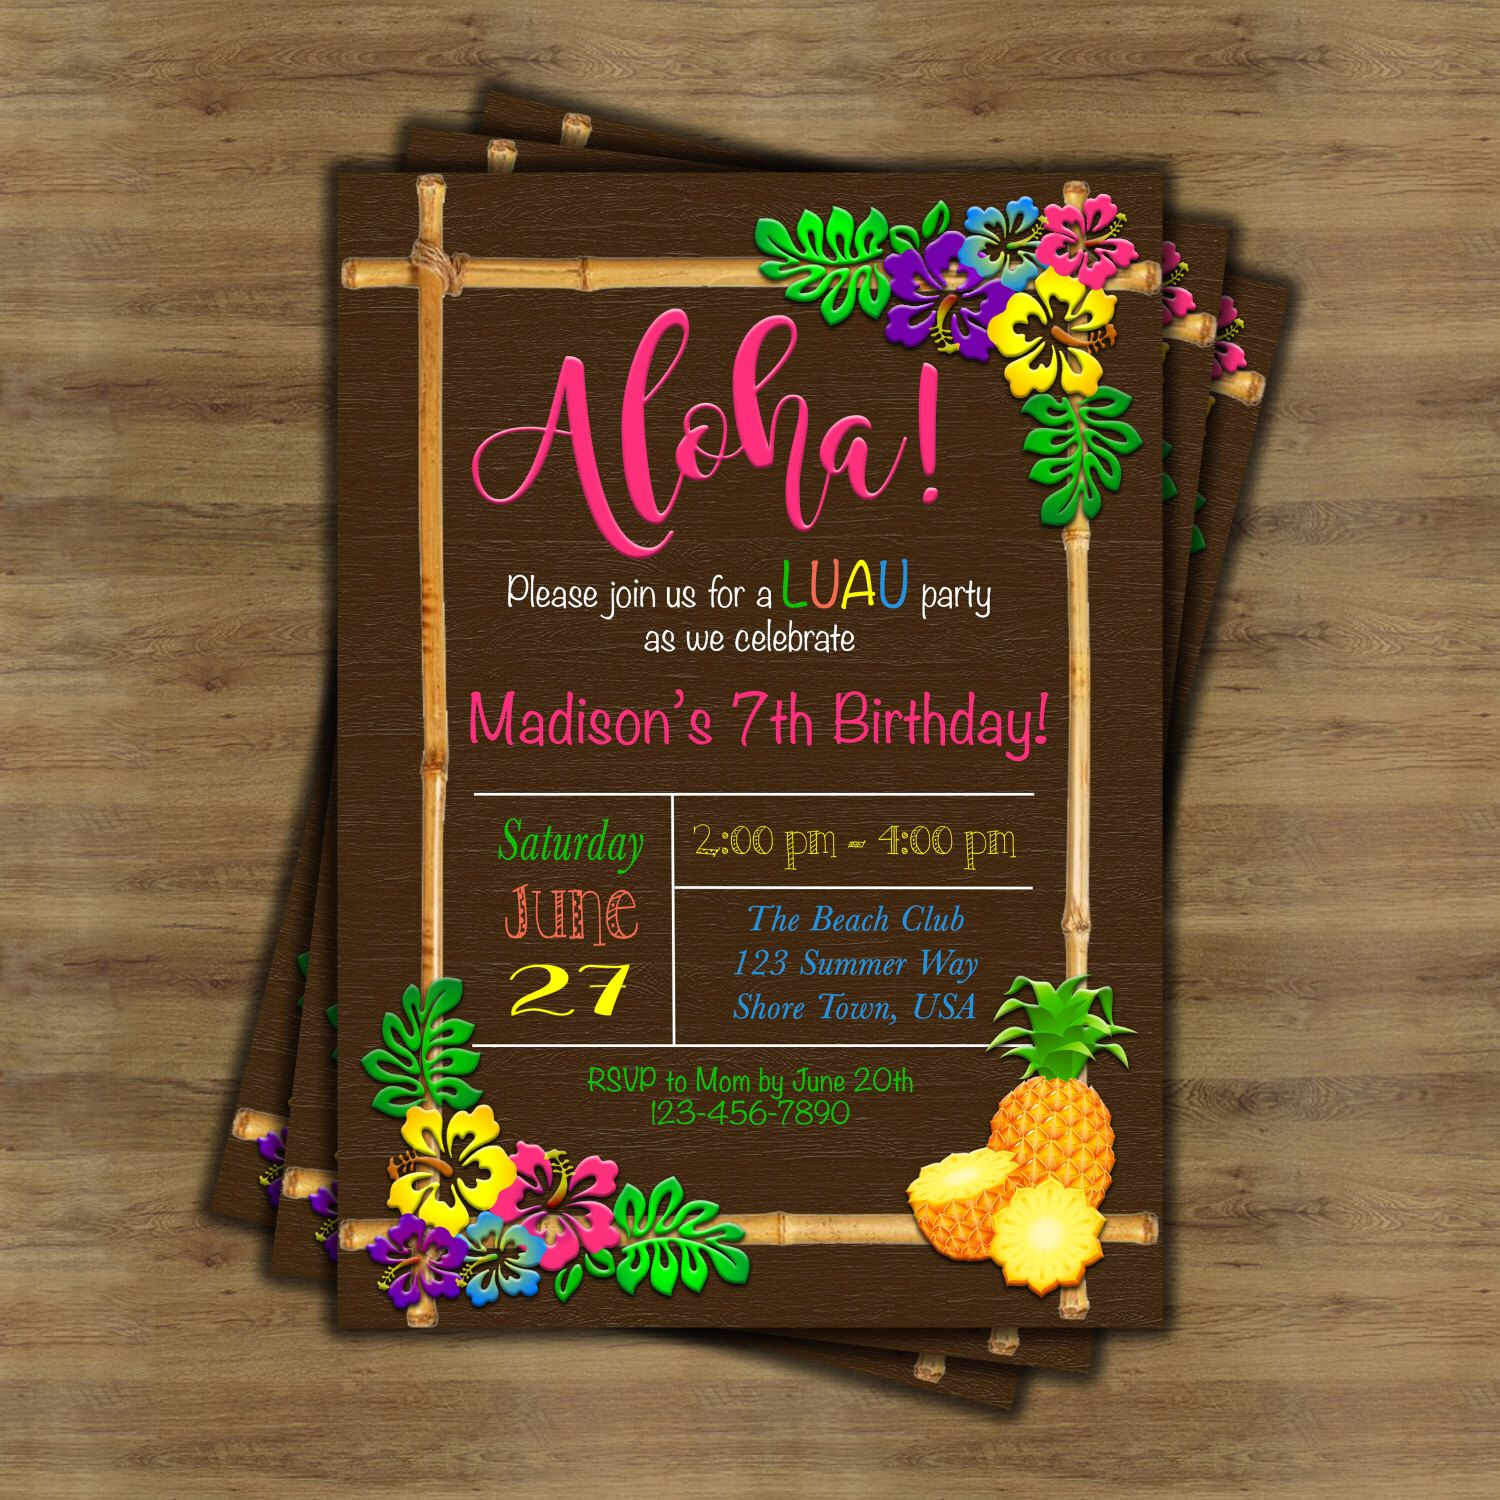 Luau birthday invitation luau invitation hawaiian invitation luau birthday invitation luau invitation hawaiian invitation hawaiian party invitations tropical invitation tiki party invitation stopboris